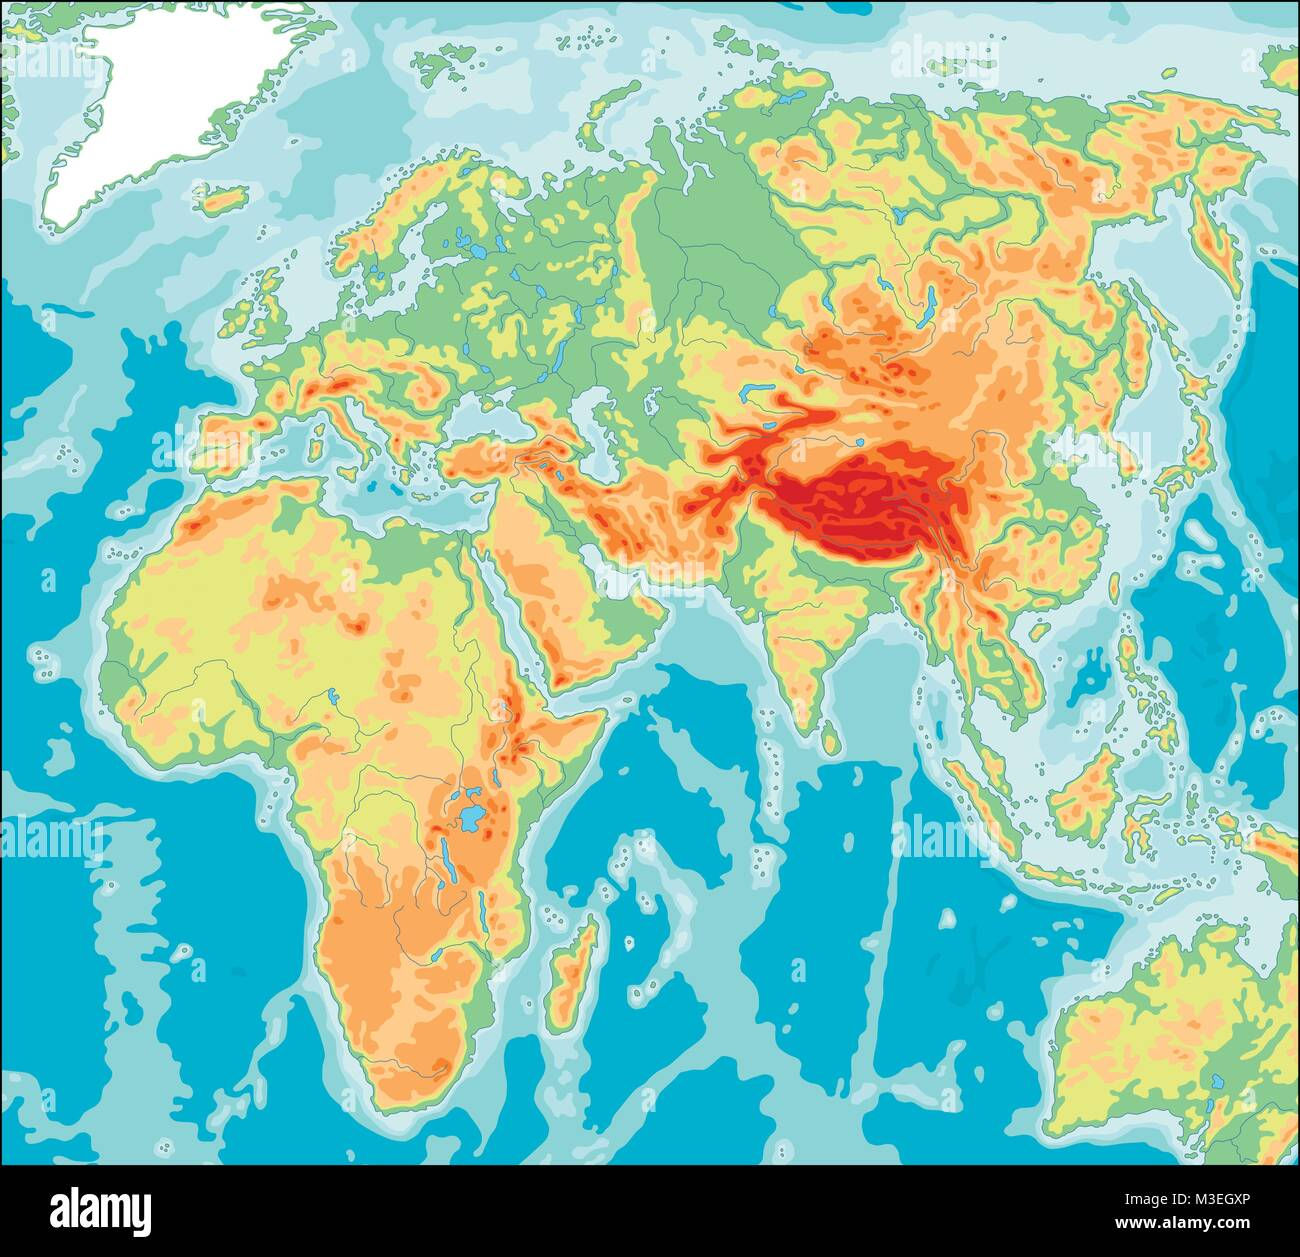 Asia centered Physical World Map - Stock Image